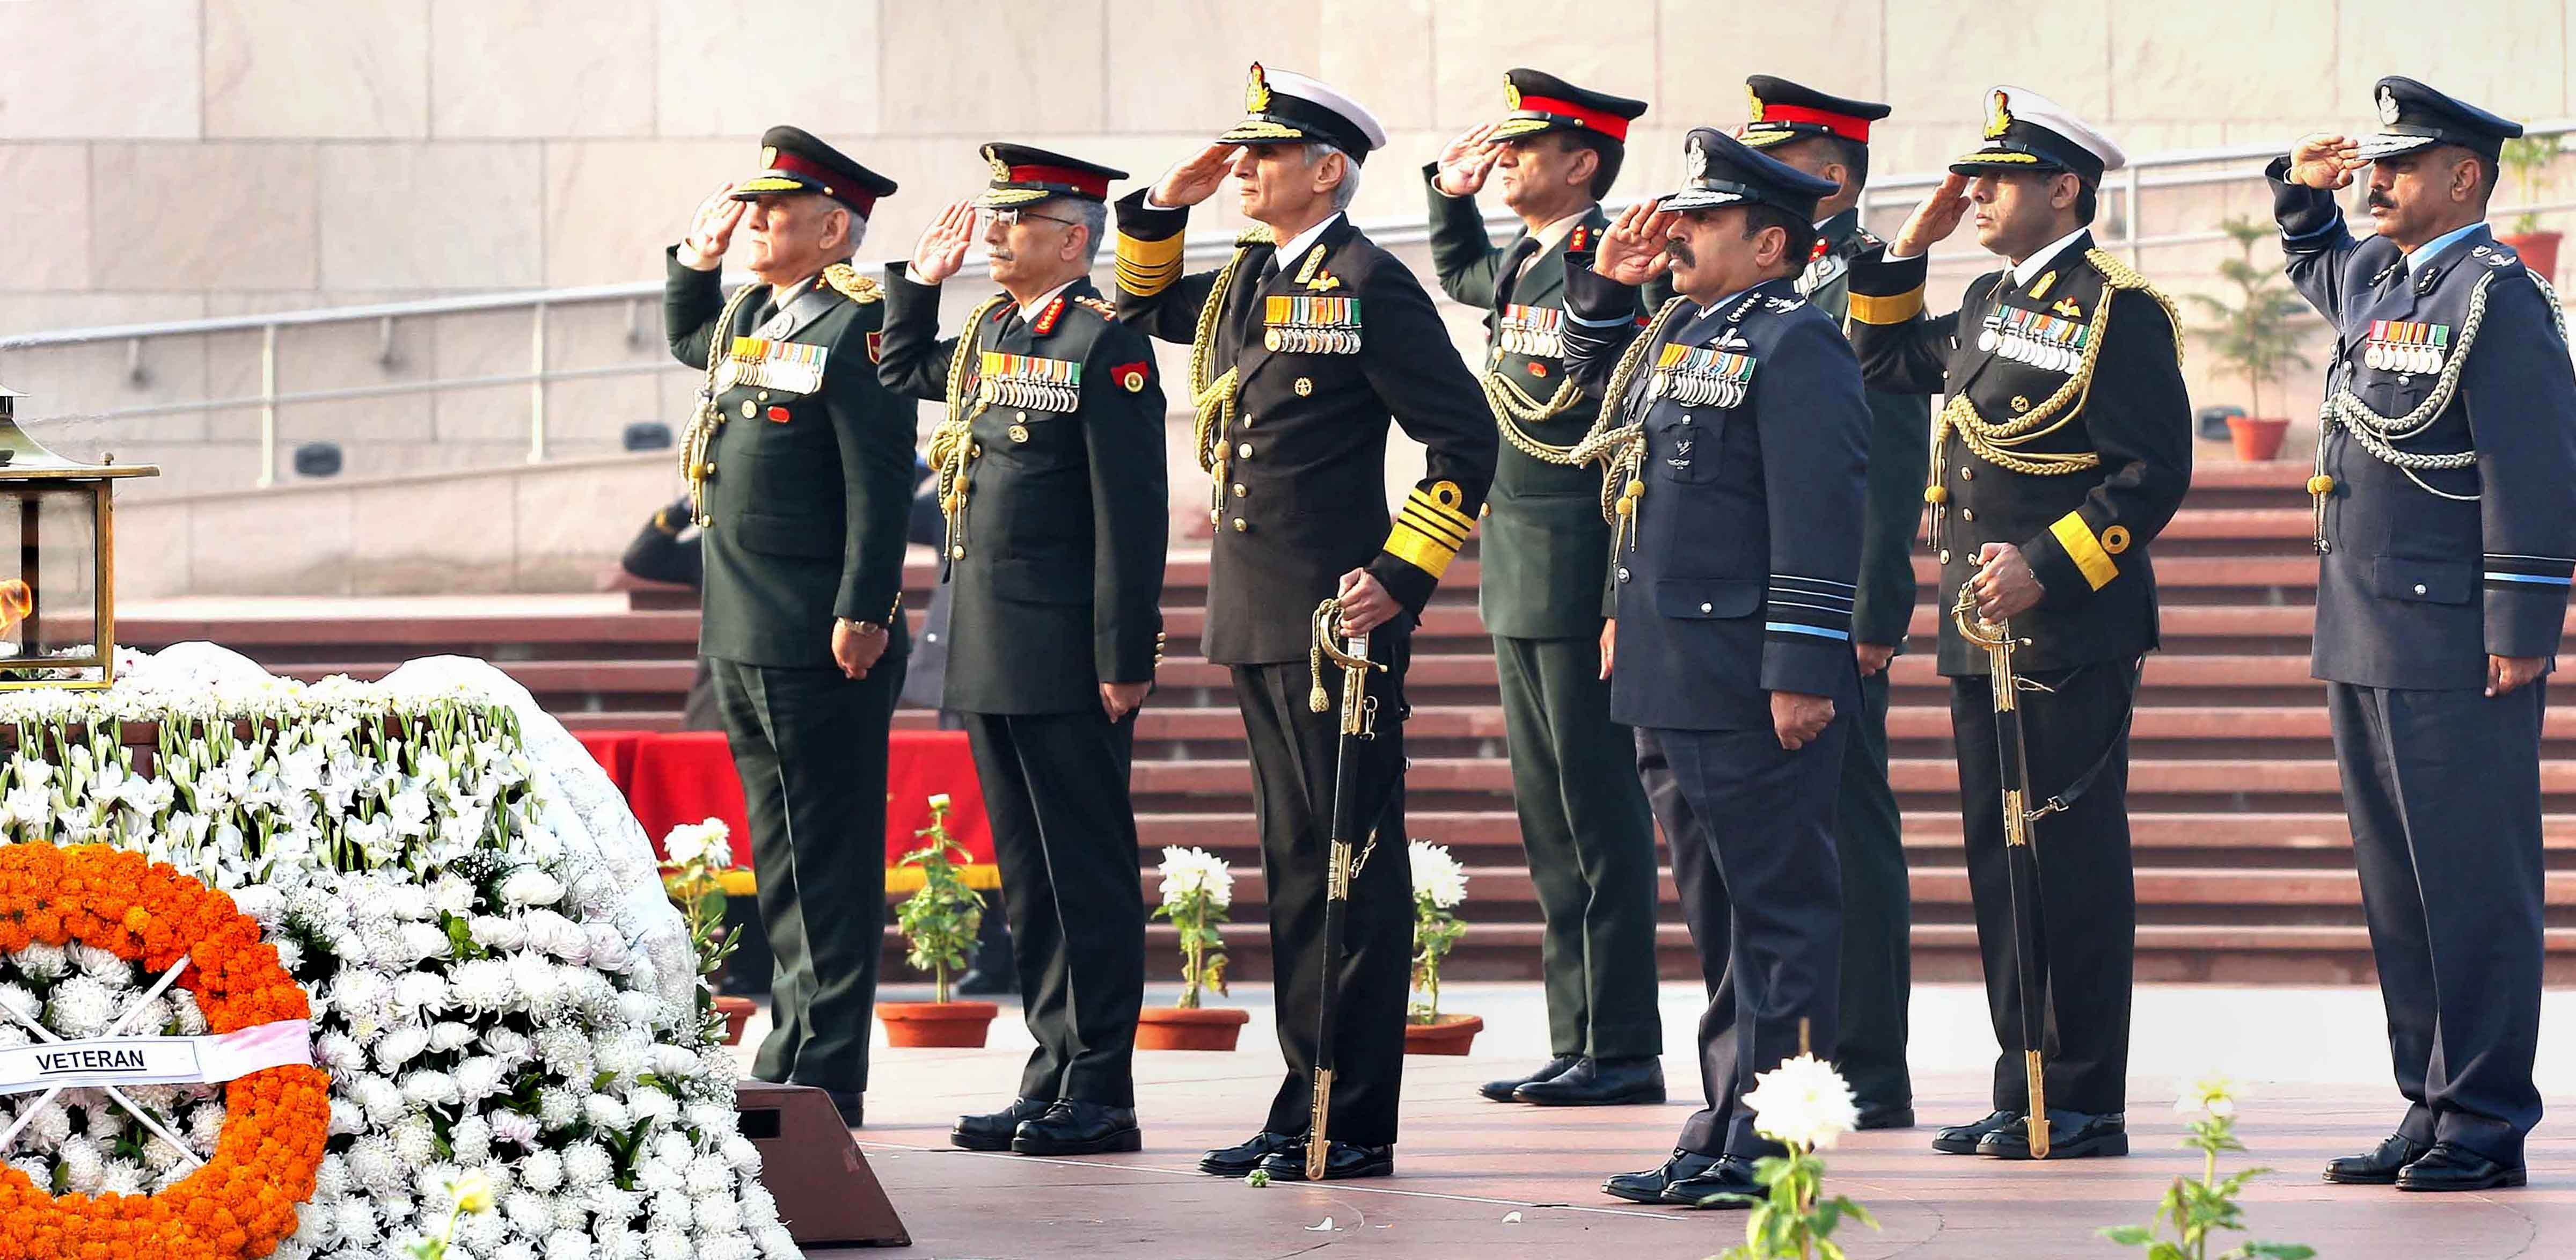 Chief of Defence Staff General Bipin Rawat, Army chief General Manoj Mukund Narawane, Chief of Air Staff Air Chief Marshal R.K.S. Bhadauria and Navy chief Admiral Karambir Singh pay tribute at the National War Memorial on Army Day 2020, in New Delhi, Wednesday, January 15, 2020.